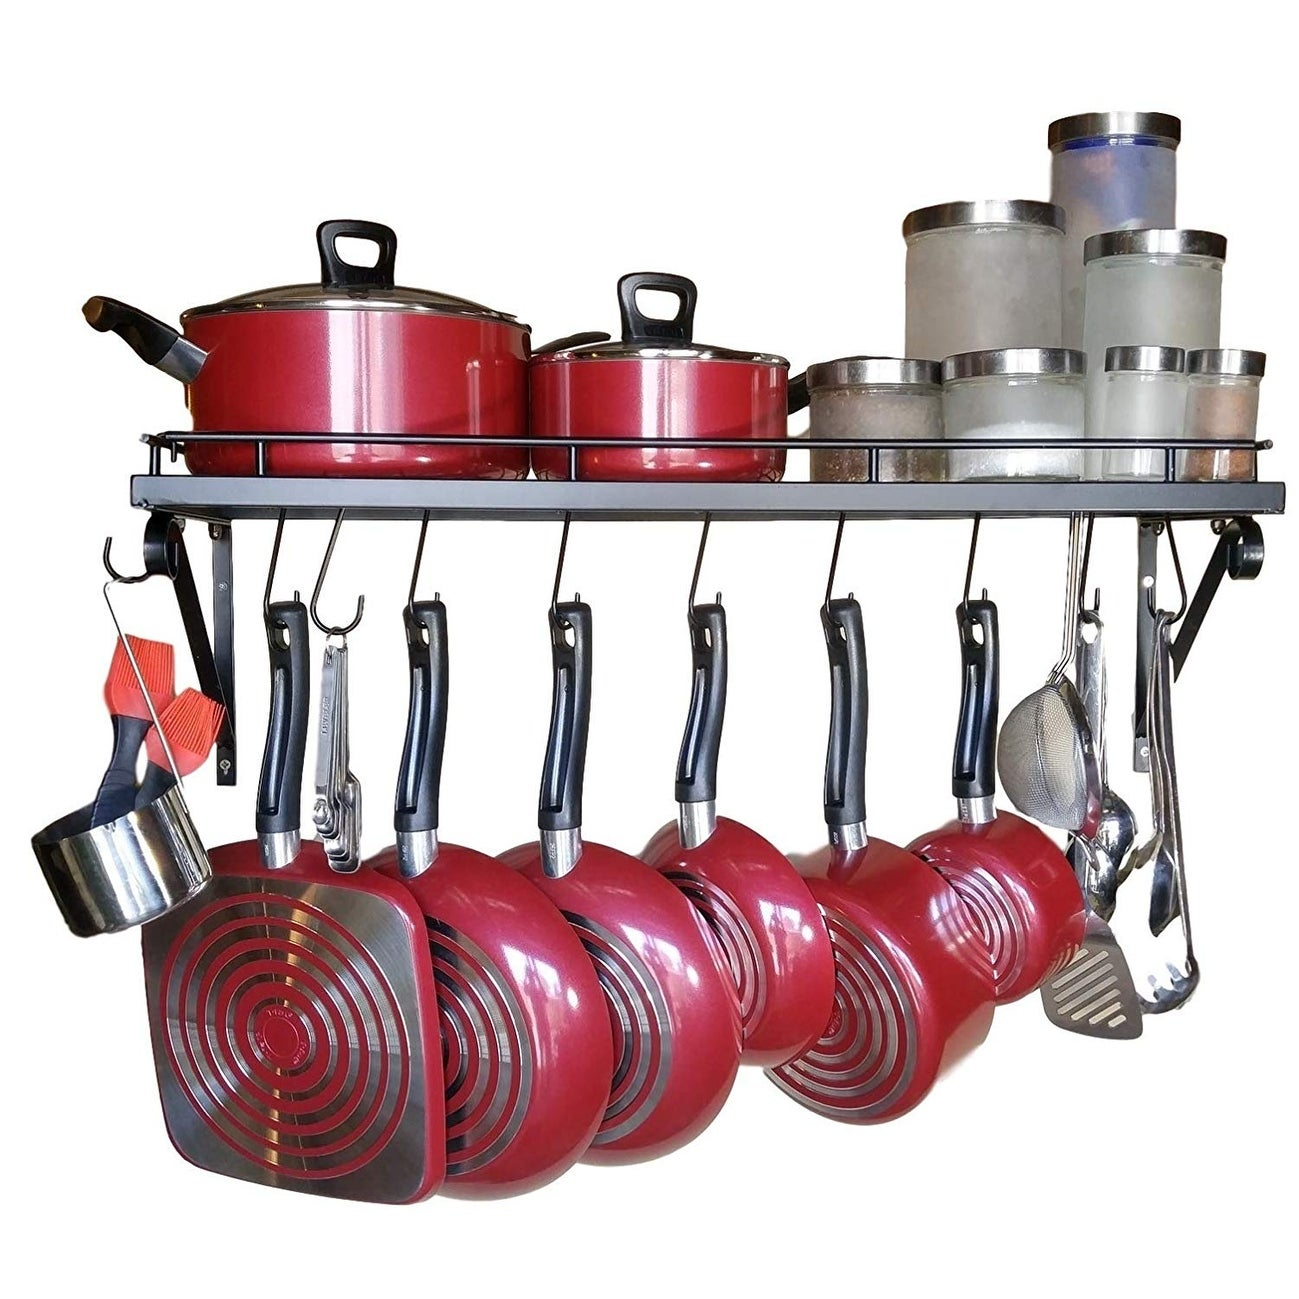 Shop 24 25 30 Wall Mounted Pots And Pans Rack Overstock 31224906